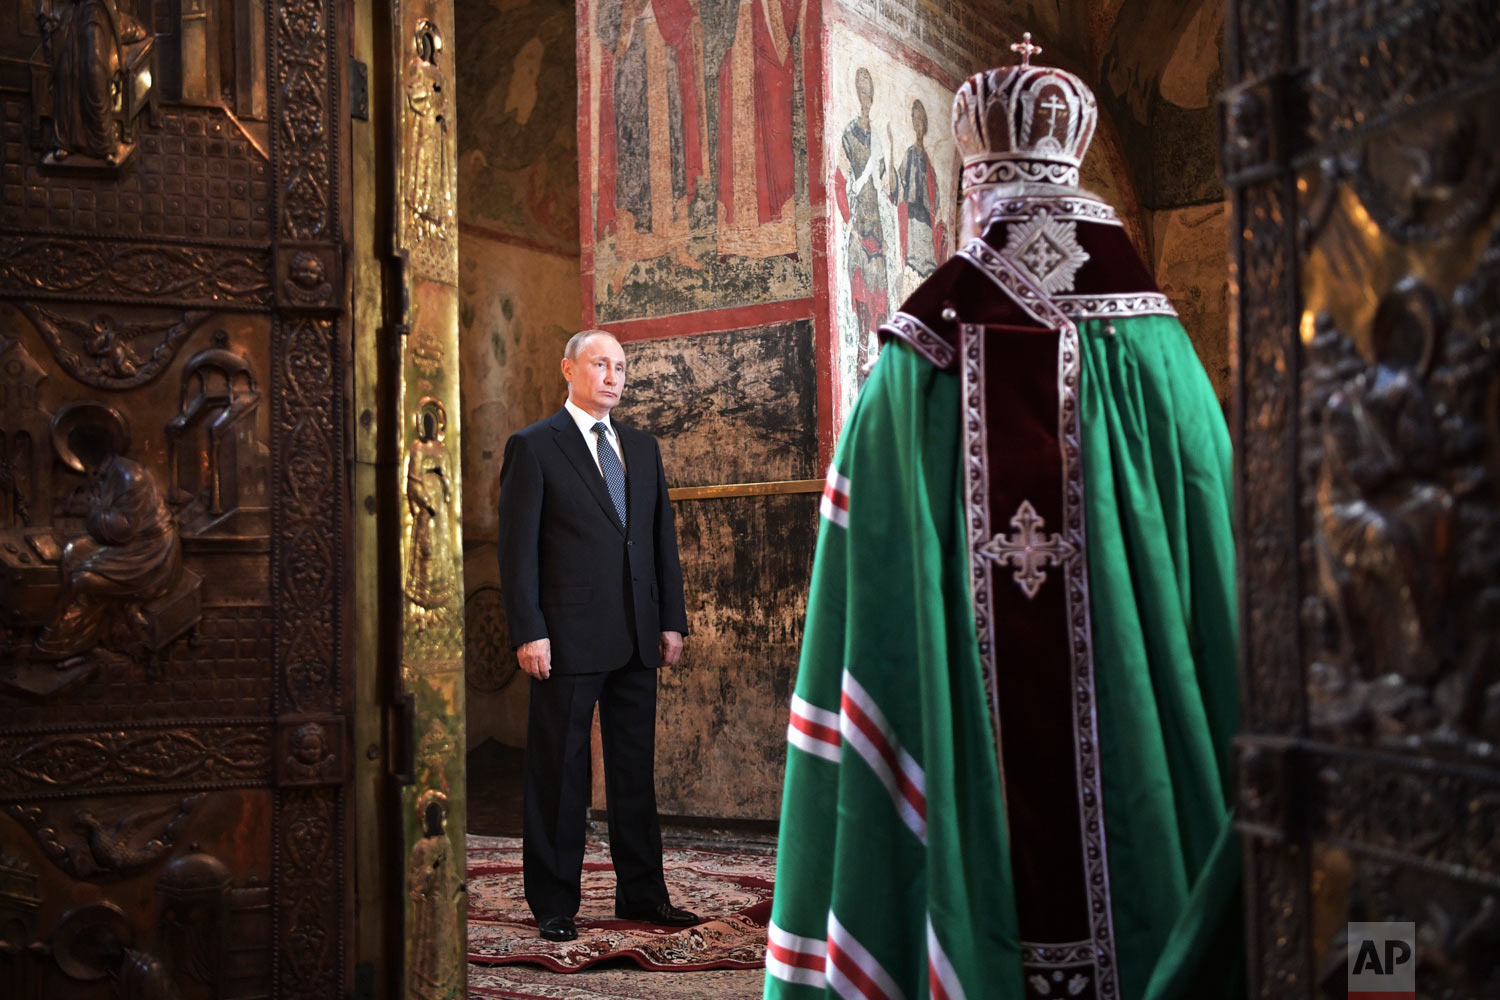 Russian President Vladimir Putin attends a service held by Russian Orthodox Patriarch Krill, right, in the Annunciation Cathedral after Putin's inauguration ceremony in the Kremlin in Moscow, Russia, on Monday, May 7, 2018. Putin took the oath of office for his fourth term as Russian president and promised to pursue an economic agenda that would boost living standards across the country. (Alexei Nikolsky, Sputnik, Kremlin Pool Photo via AP)